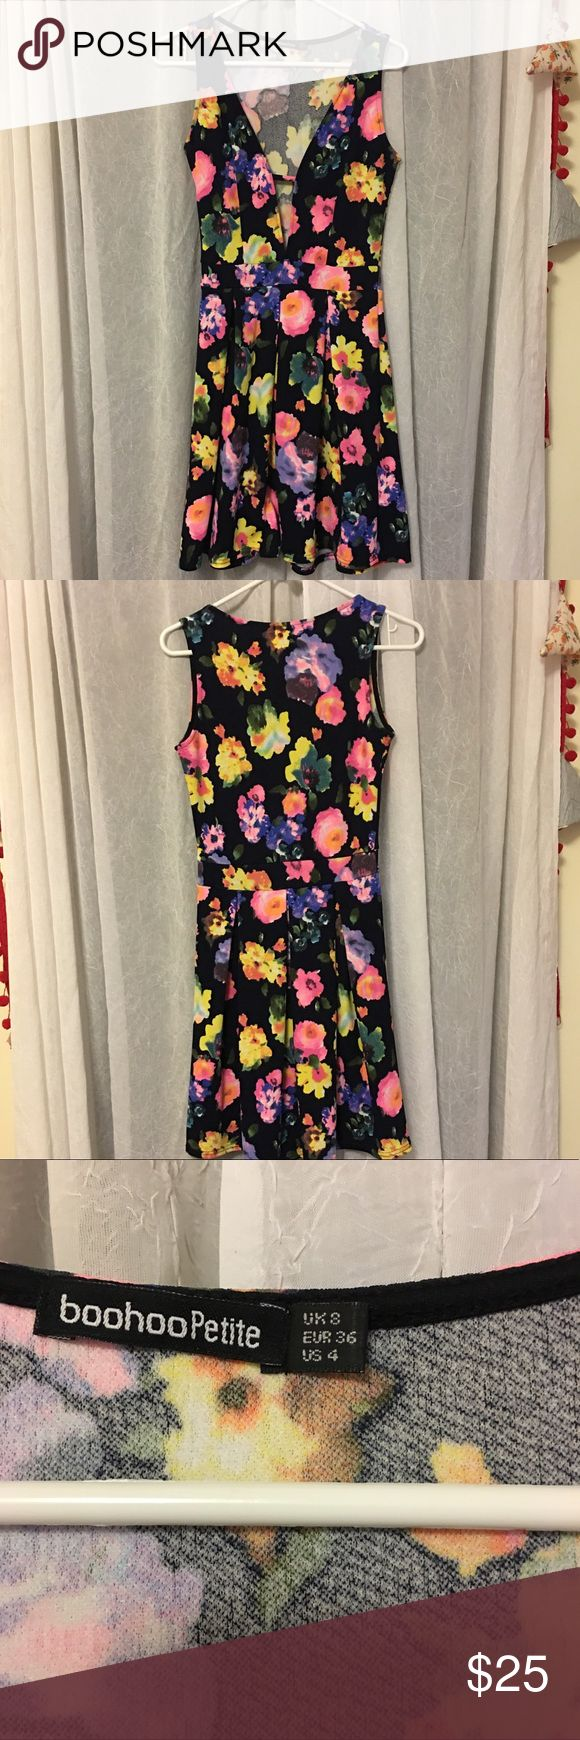 Floral Cut Out dress! 🌺 NWOT 🌸 Boohoo US size 4 Adorable dress with front cut out, pink yellow orange blue and purple flower pattern! From boohoo petite size 4 never worn (just tried on) hits just above the knee. This pattern reminds me of spring and weekend brunches! Perfect for any occasion. 34.5 inches from shoulder, waist is 25 inches. The fabric has stretch! Boohoo Petite Dresses